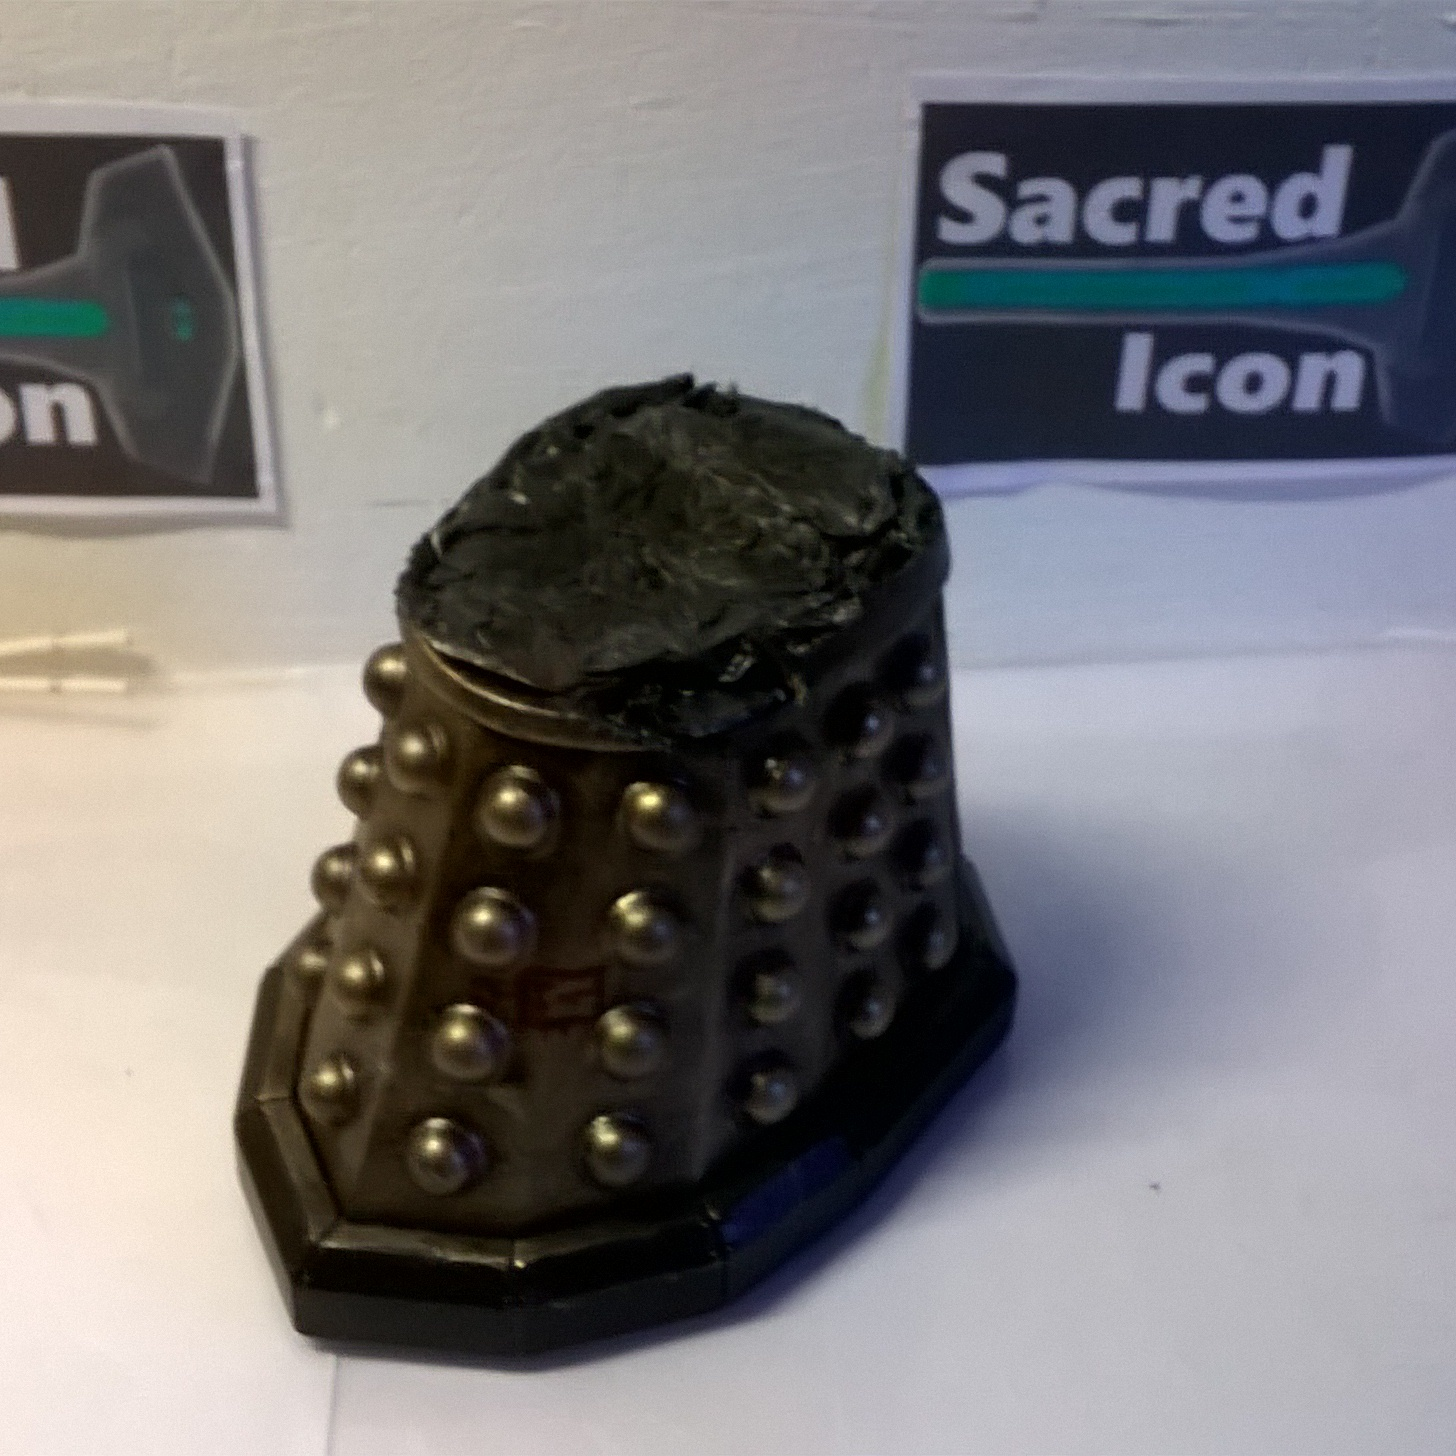 Custom Destroyed Time War Dalek with no top section